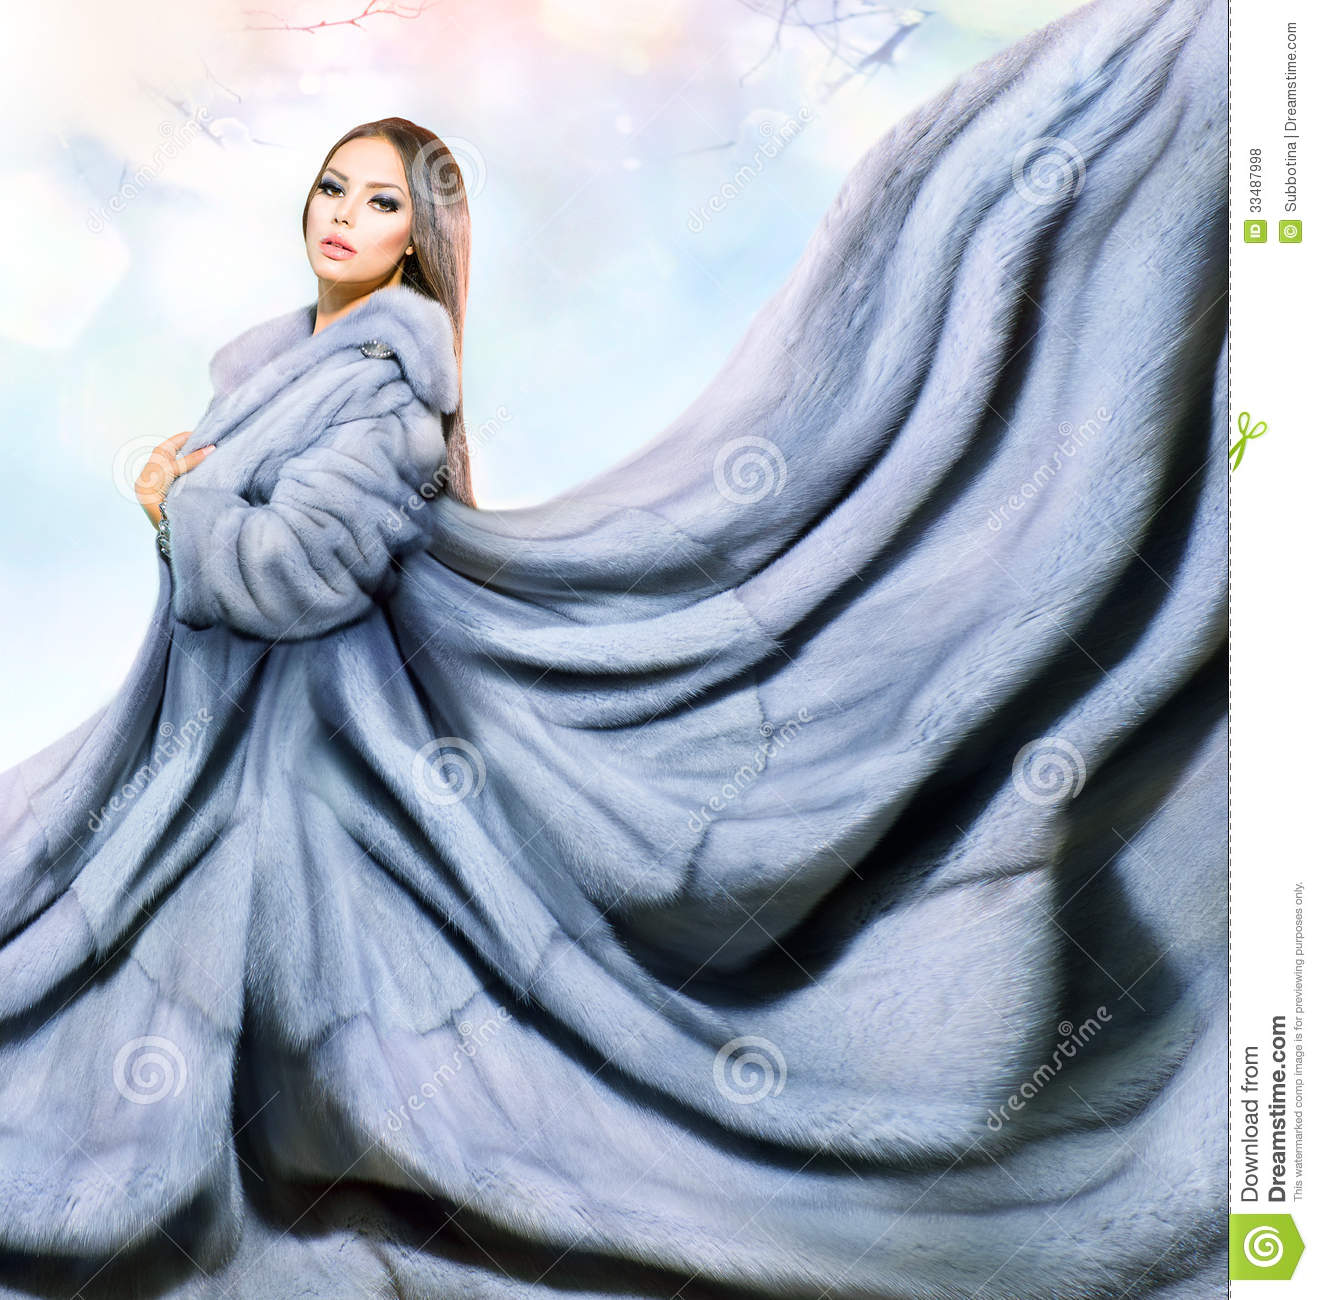 Girl In Blue Mink Fur Coat Royalty Free Stock Photos - Image: 33487998